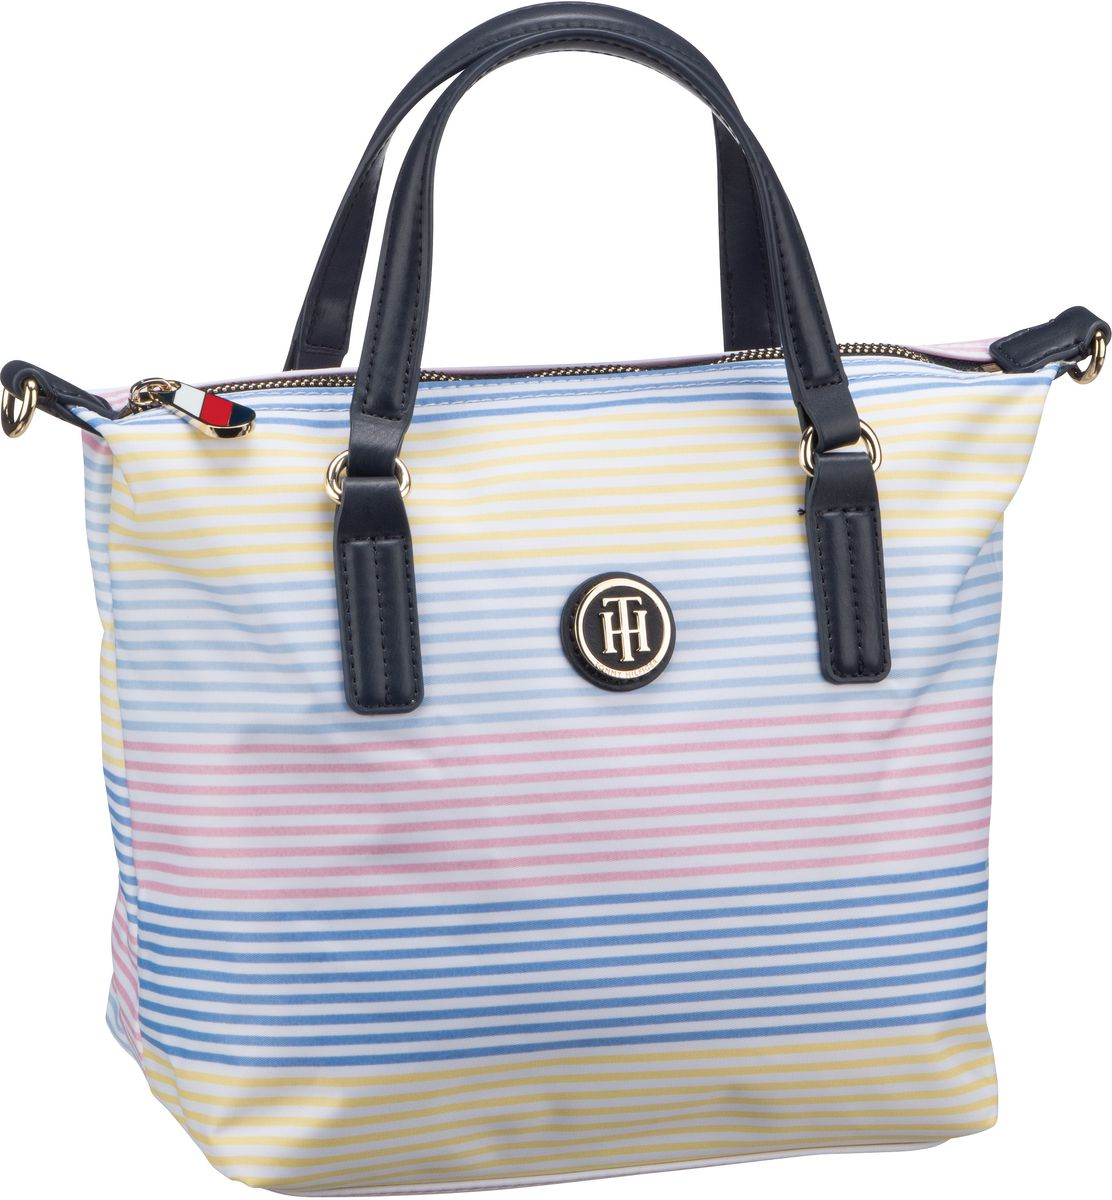 Handtasche Poppy Small Tote STP 6863 Multi Stripe